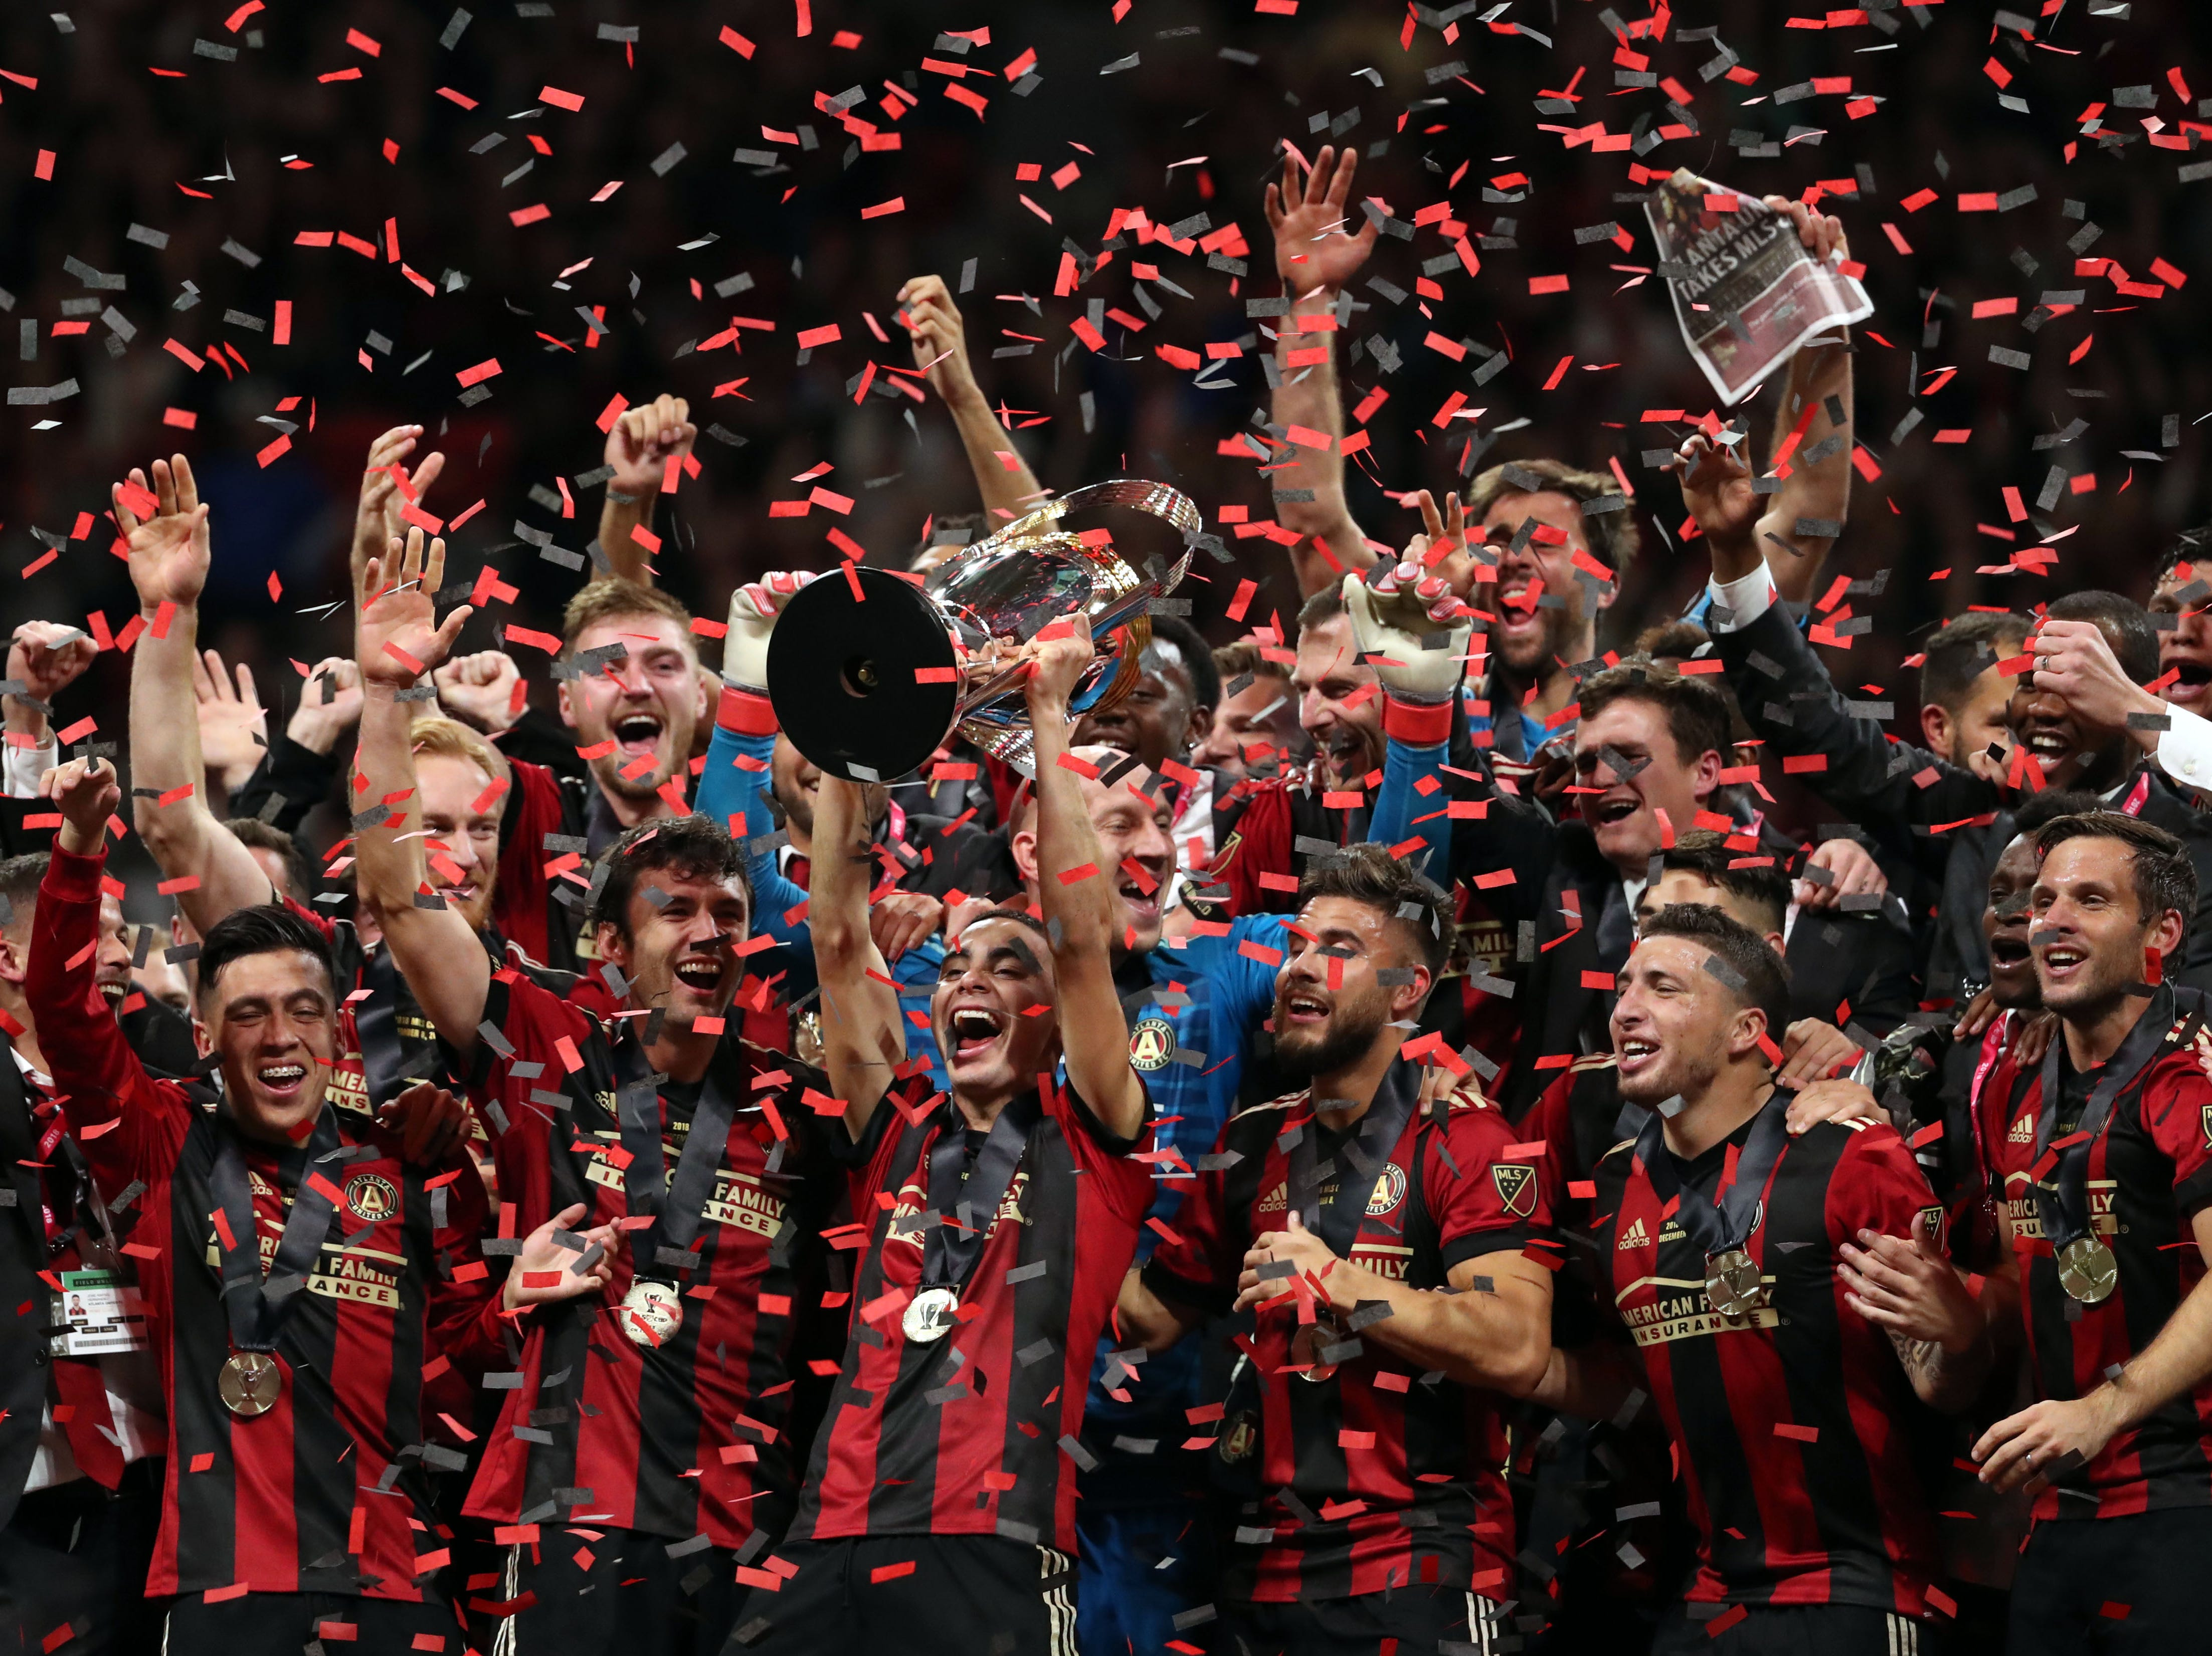 Dec. 8: Atlanta United celebrates after defeating the Portland Timbers to win the MLS Cup.